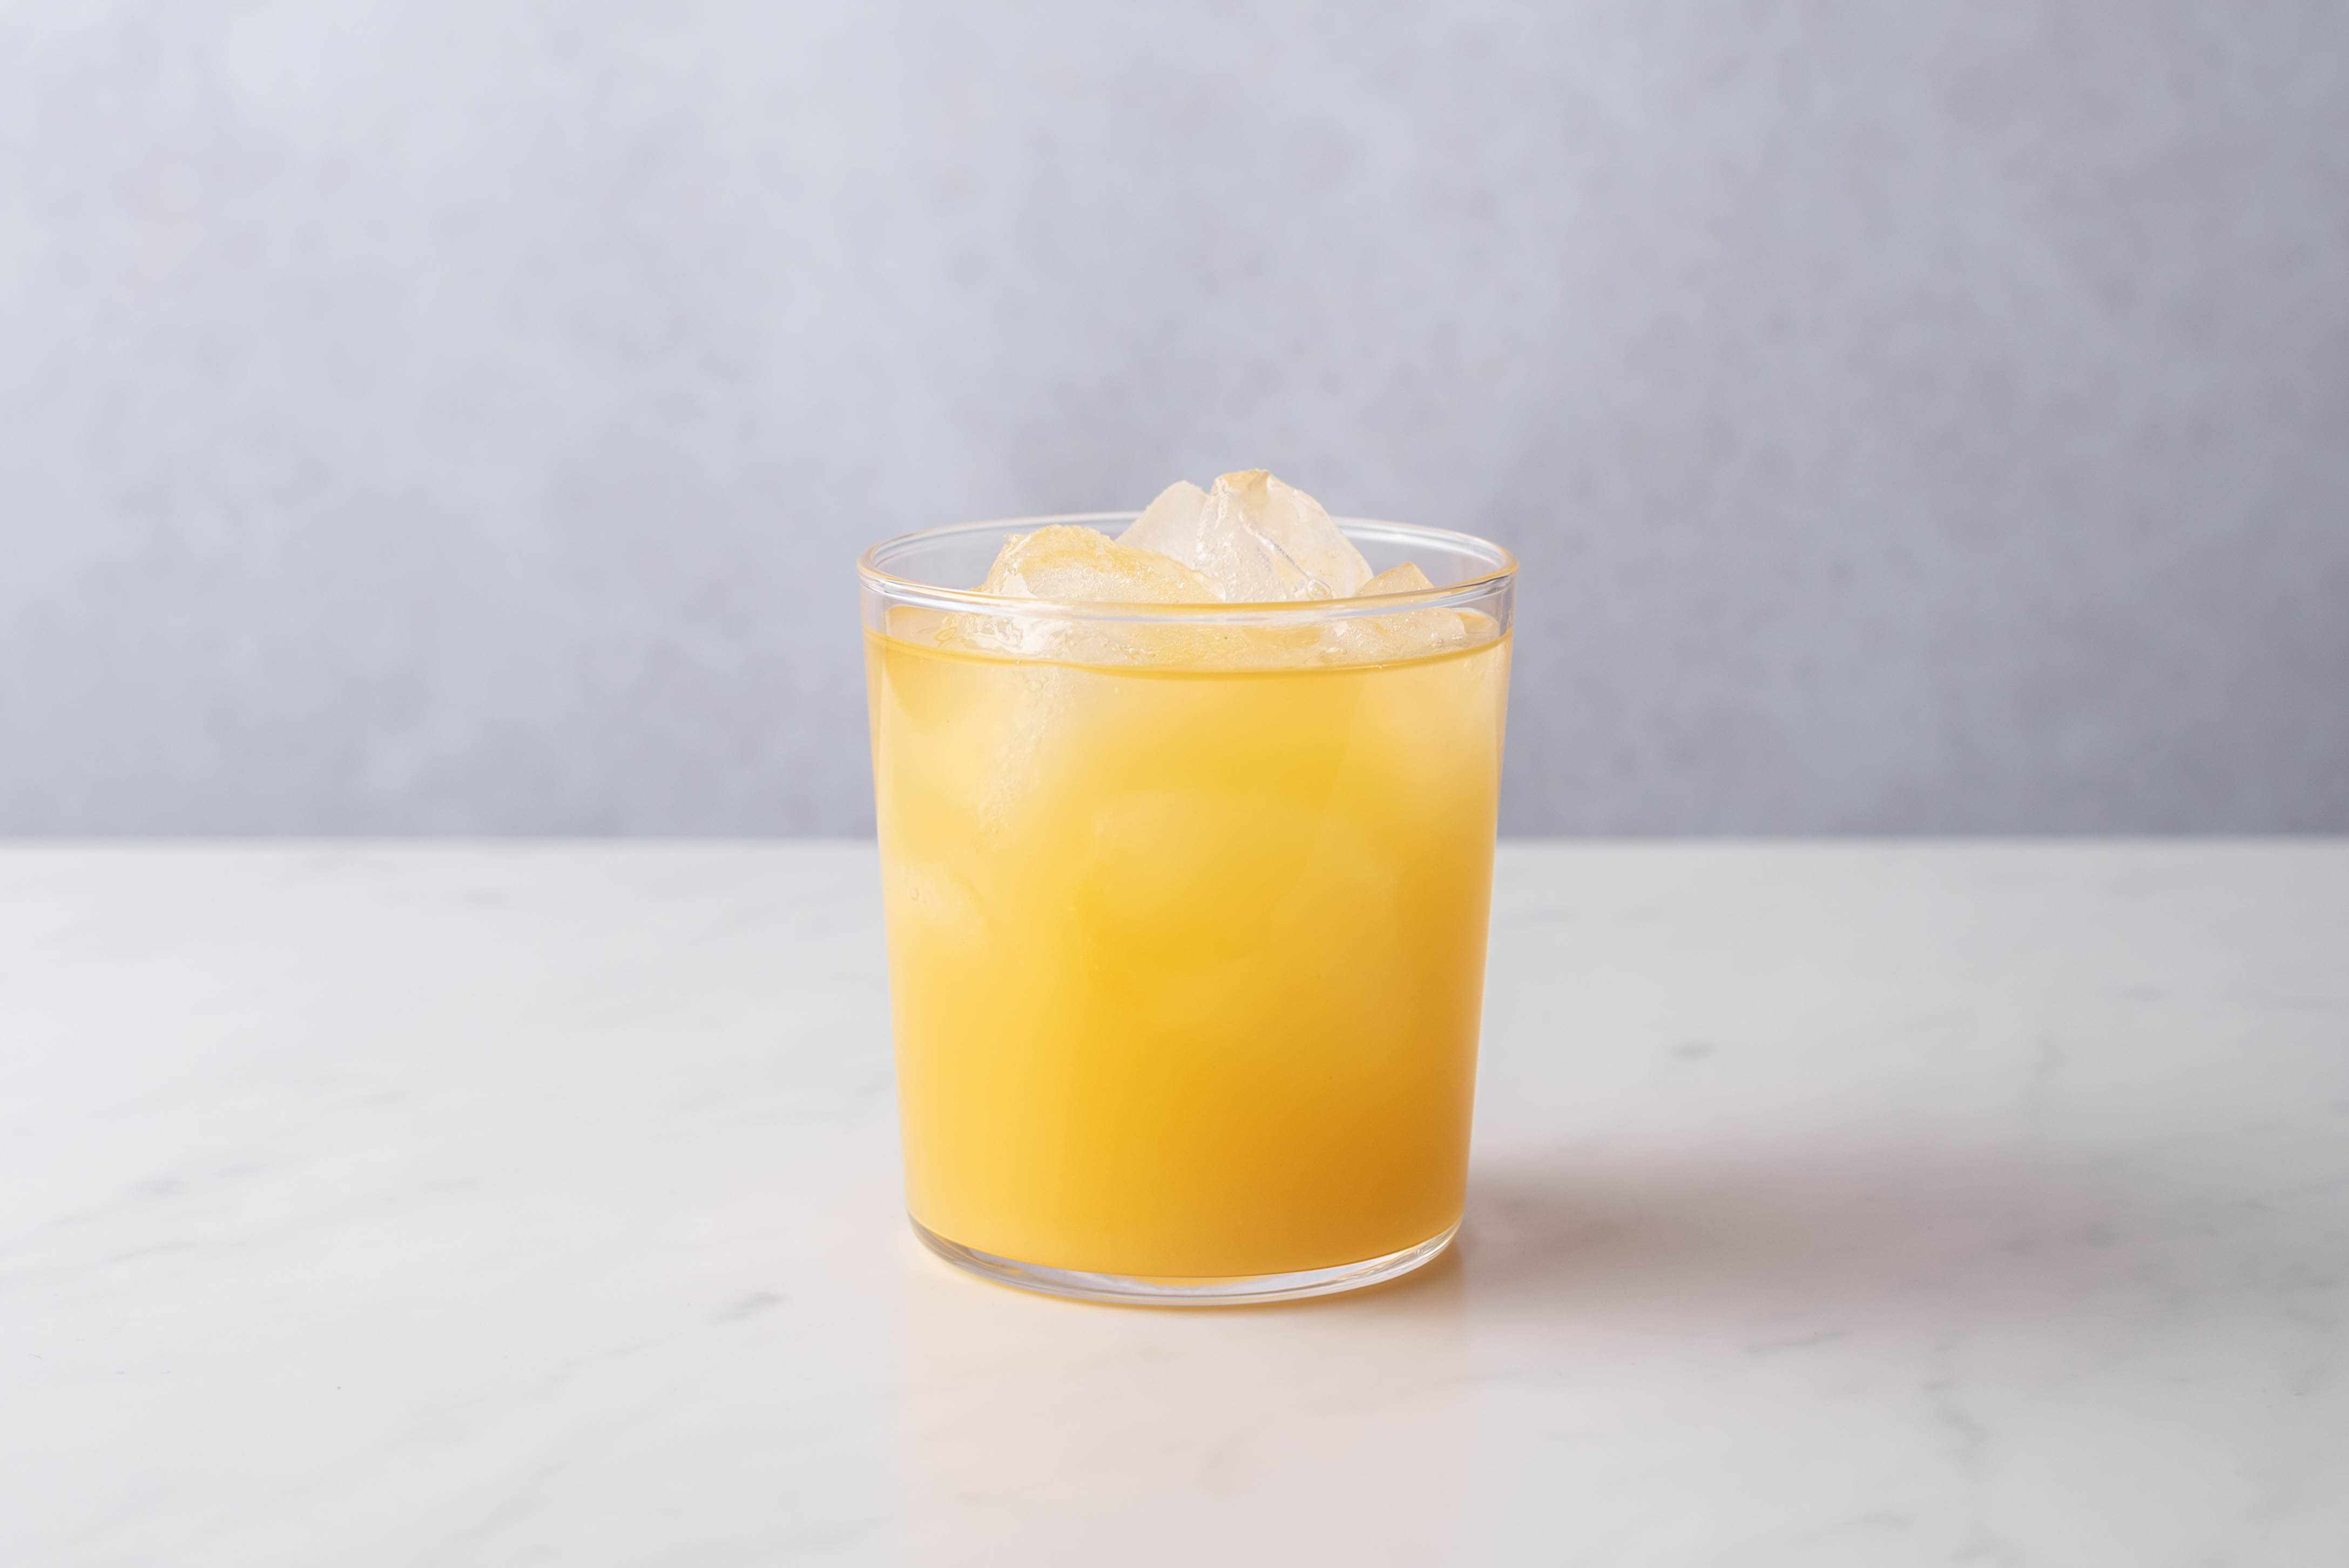 add pineapple juice to the cocktail in the glass